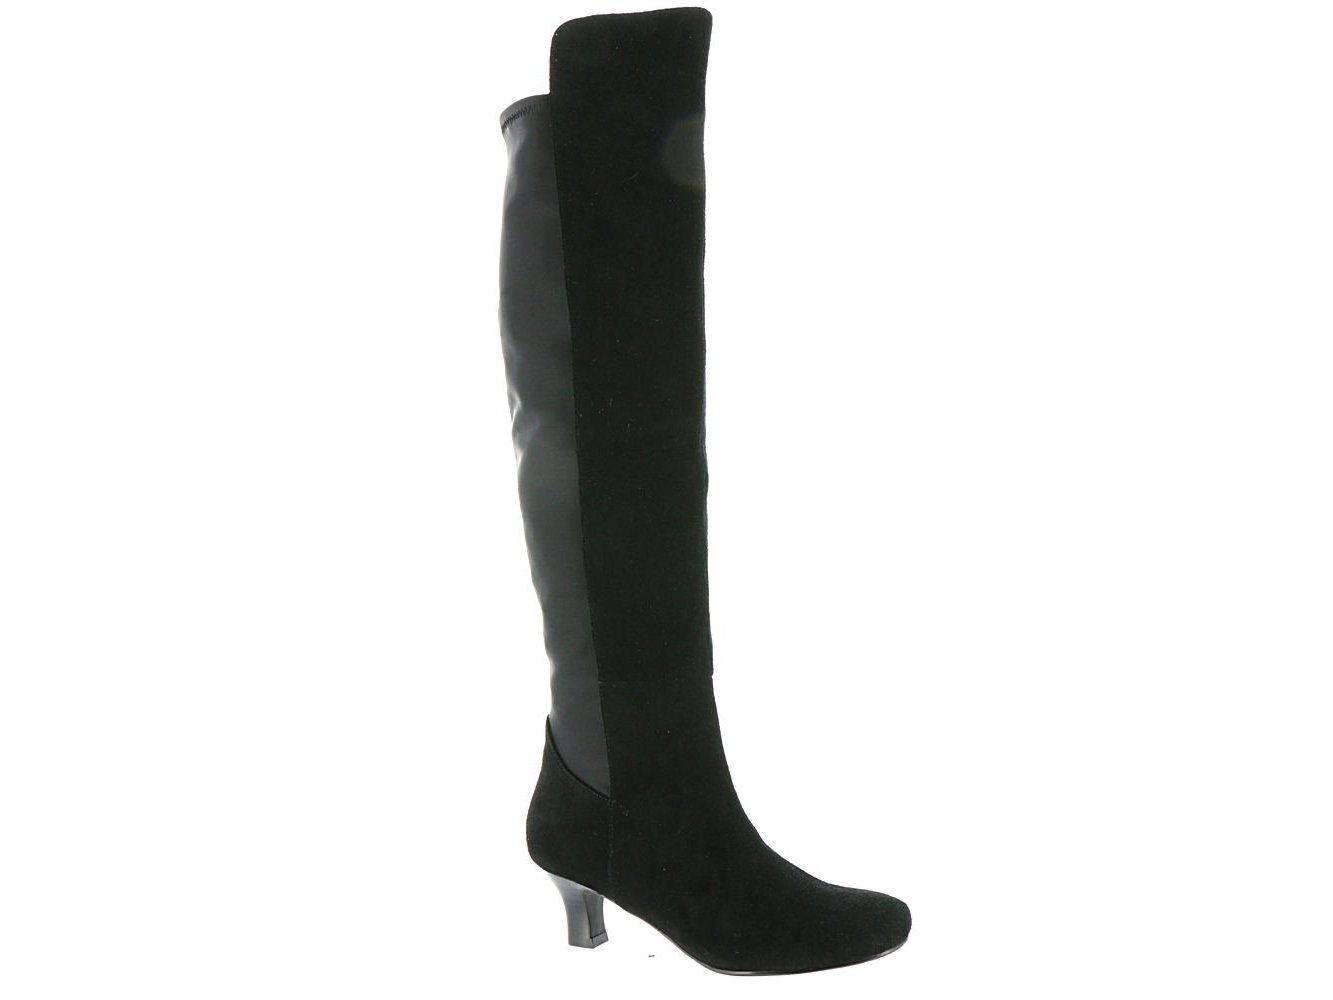 ARRAY Womens Adele Suede Closed Toe Over Knee Fashion Boots